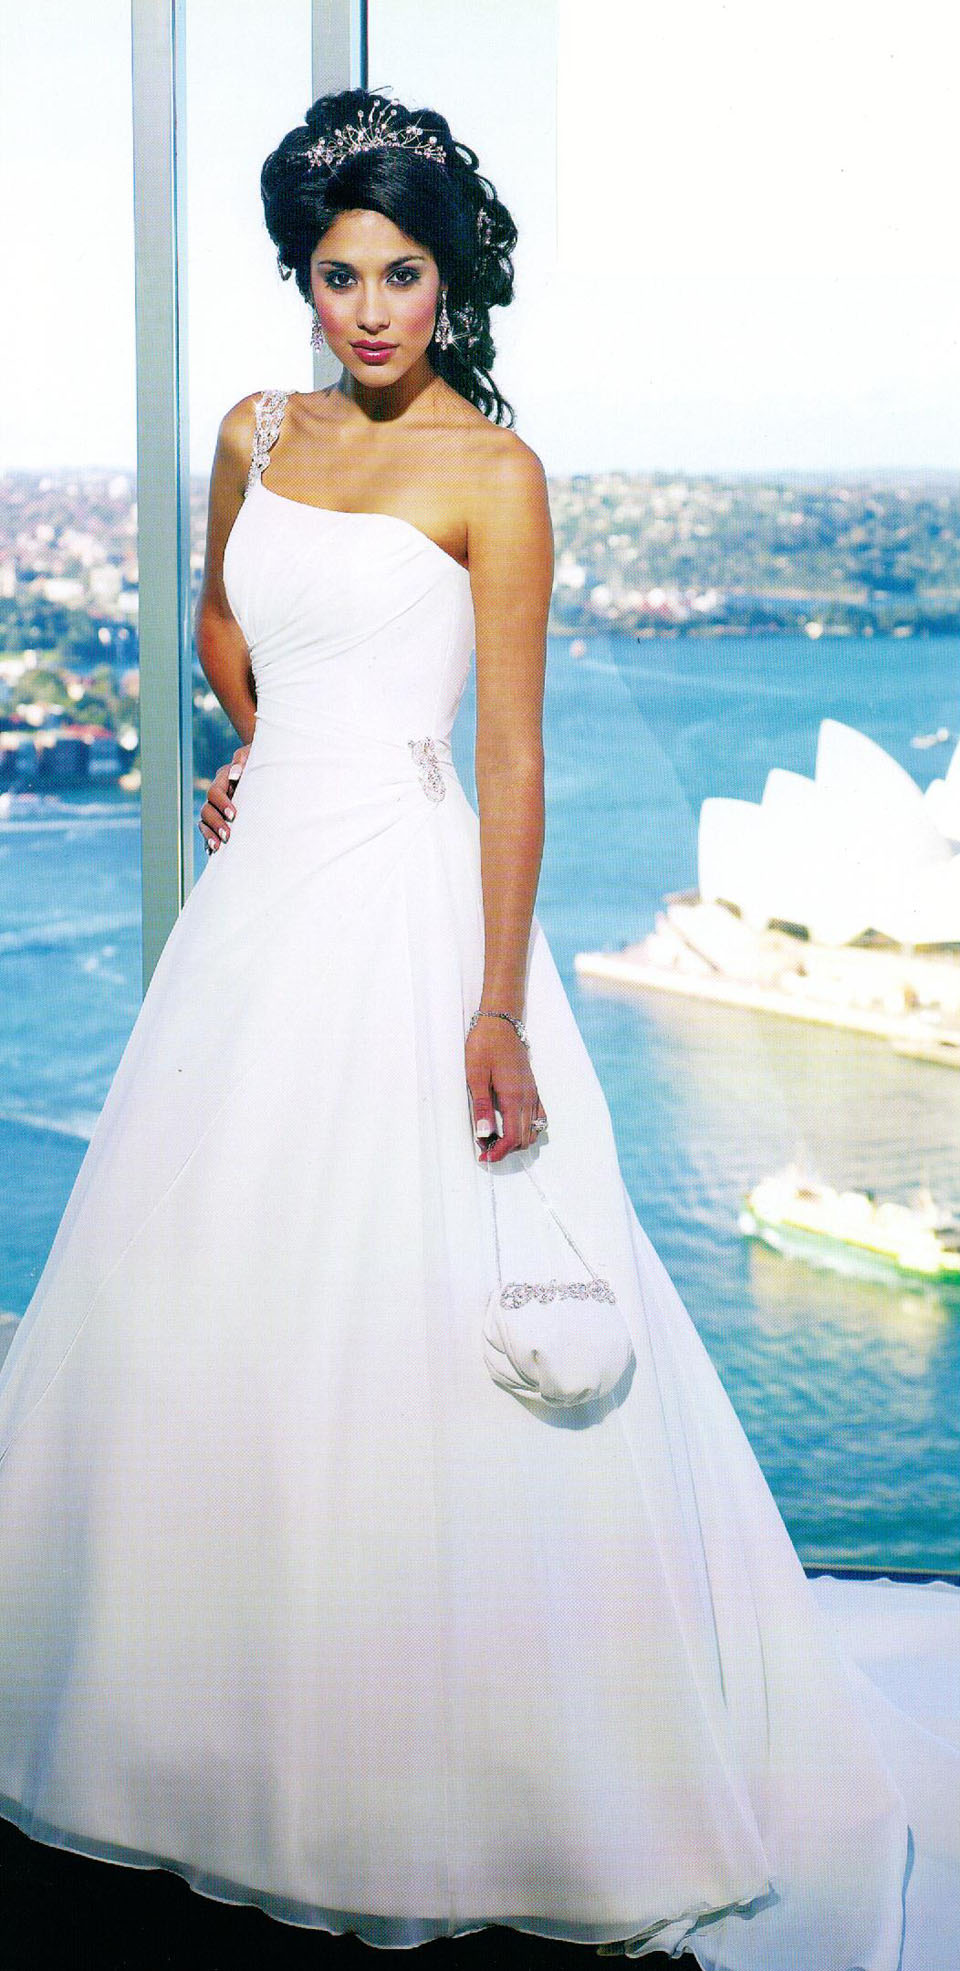 Bridal Gowns | Bridal Elegance